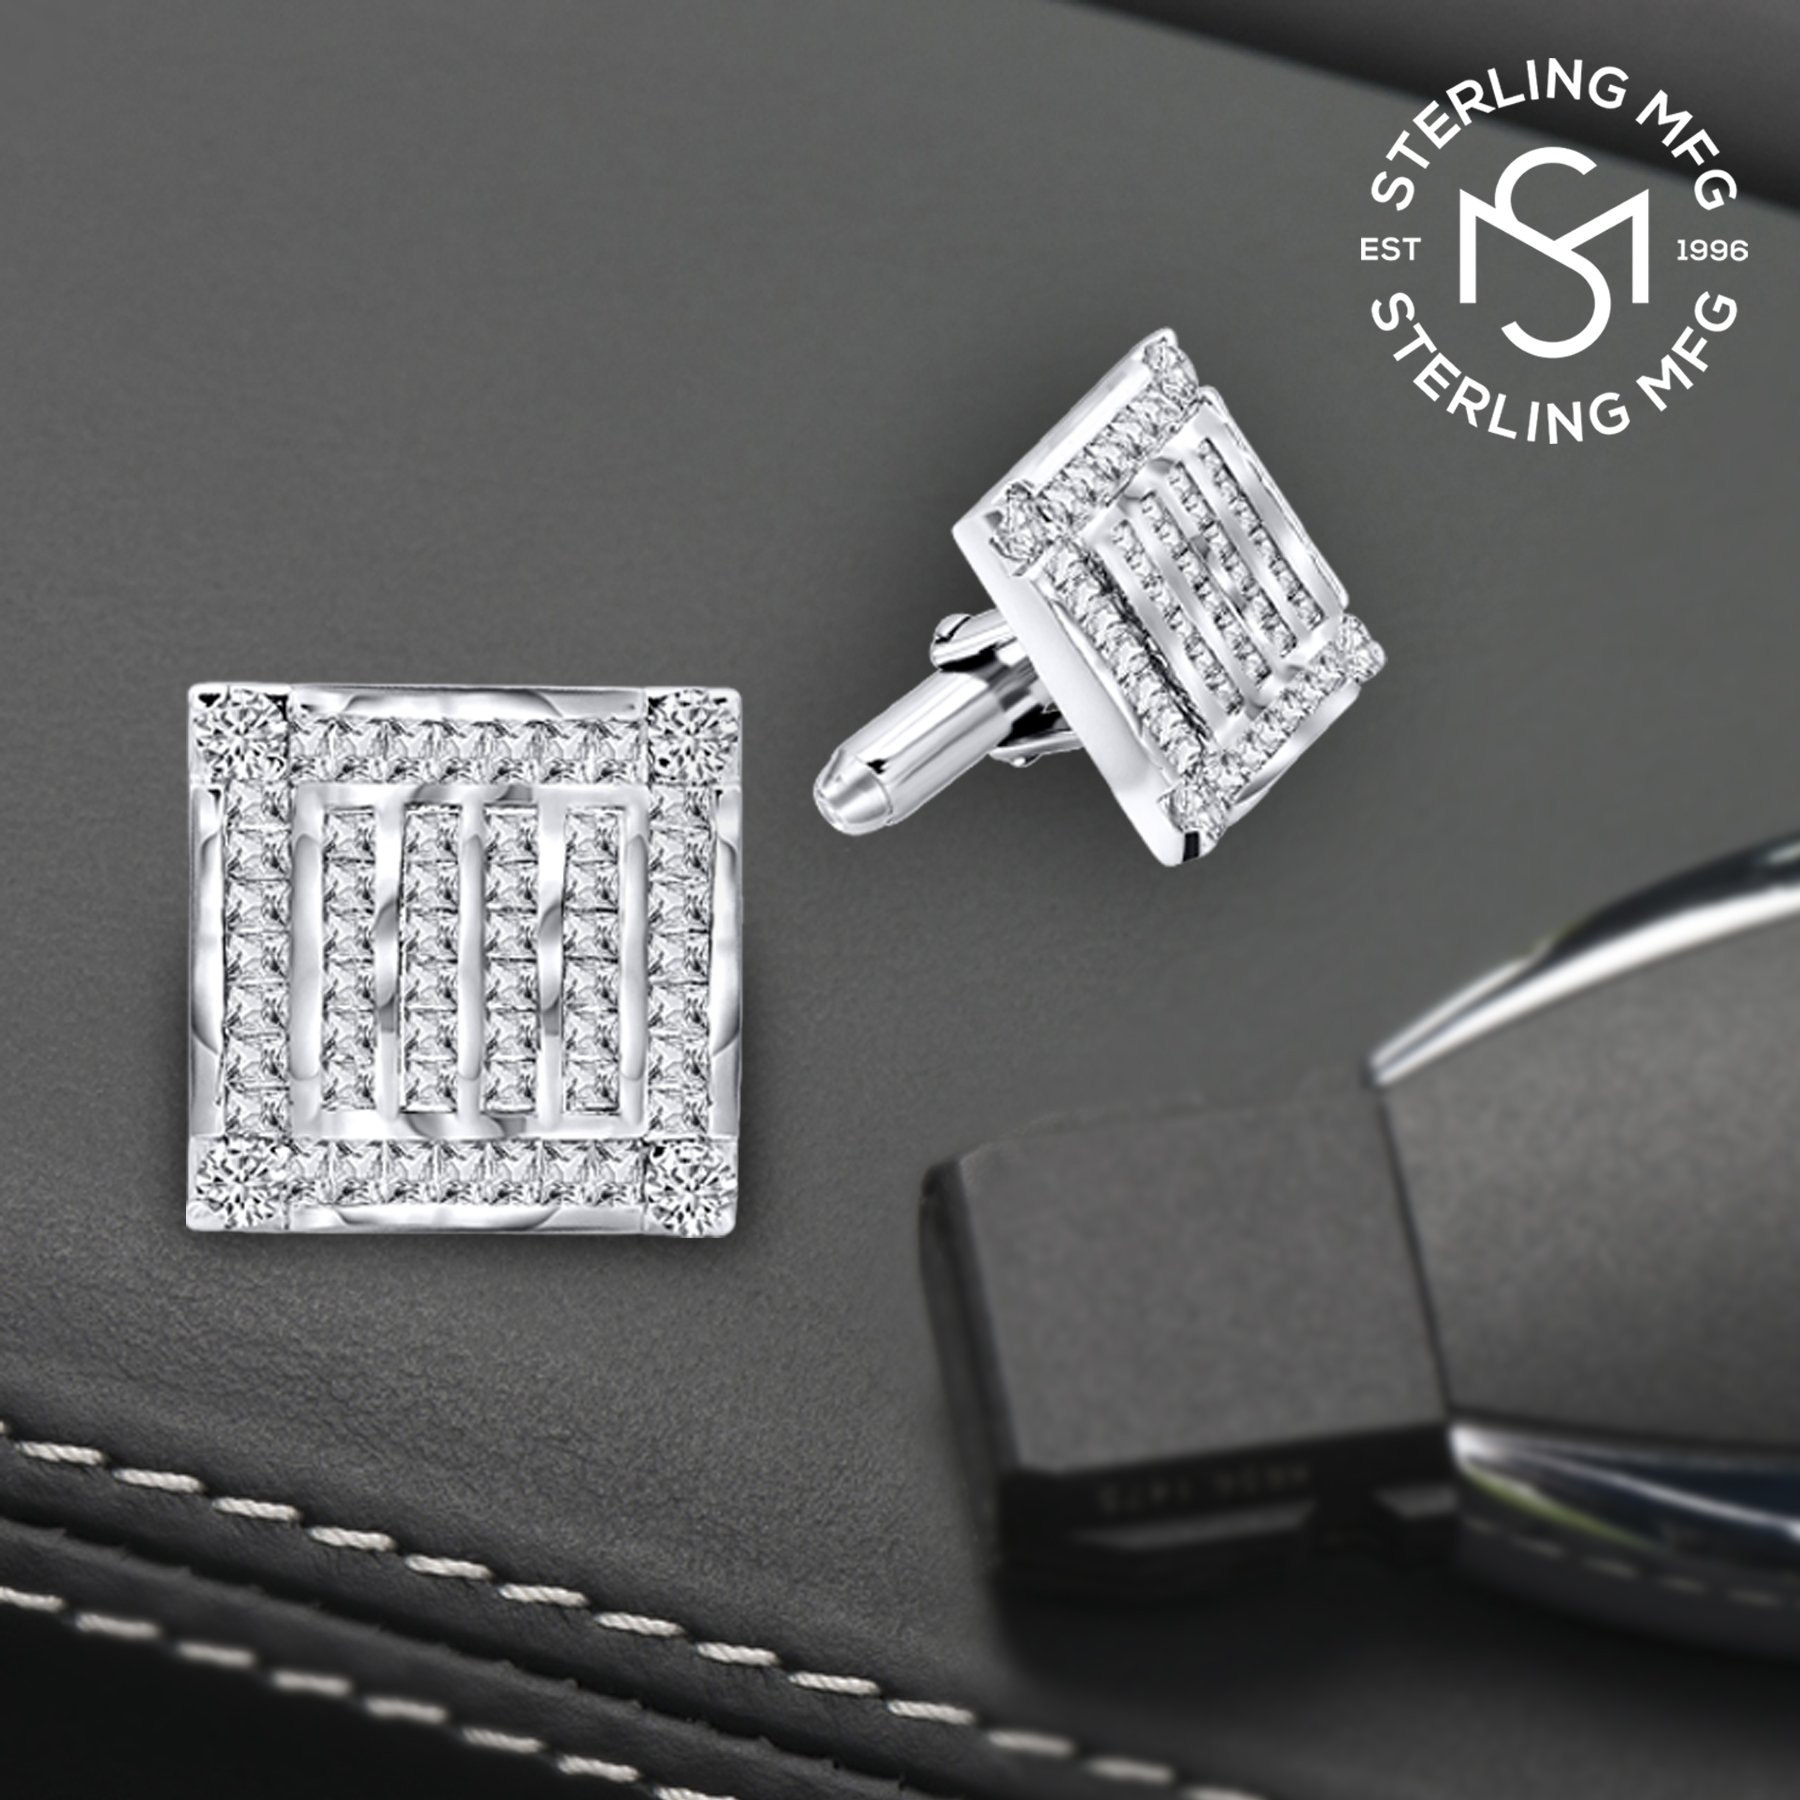 Men's Sterling Silver .925 Square Cufflinks with Channel-Set Baguette and Princess-Cut Cubic Zirconia Stones, Platinum Plated. 18.5 mm. By Sterling Manufacturers by Sterling Manufacturers (Image #4)